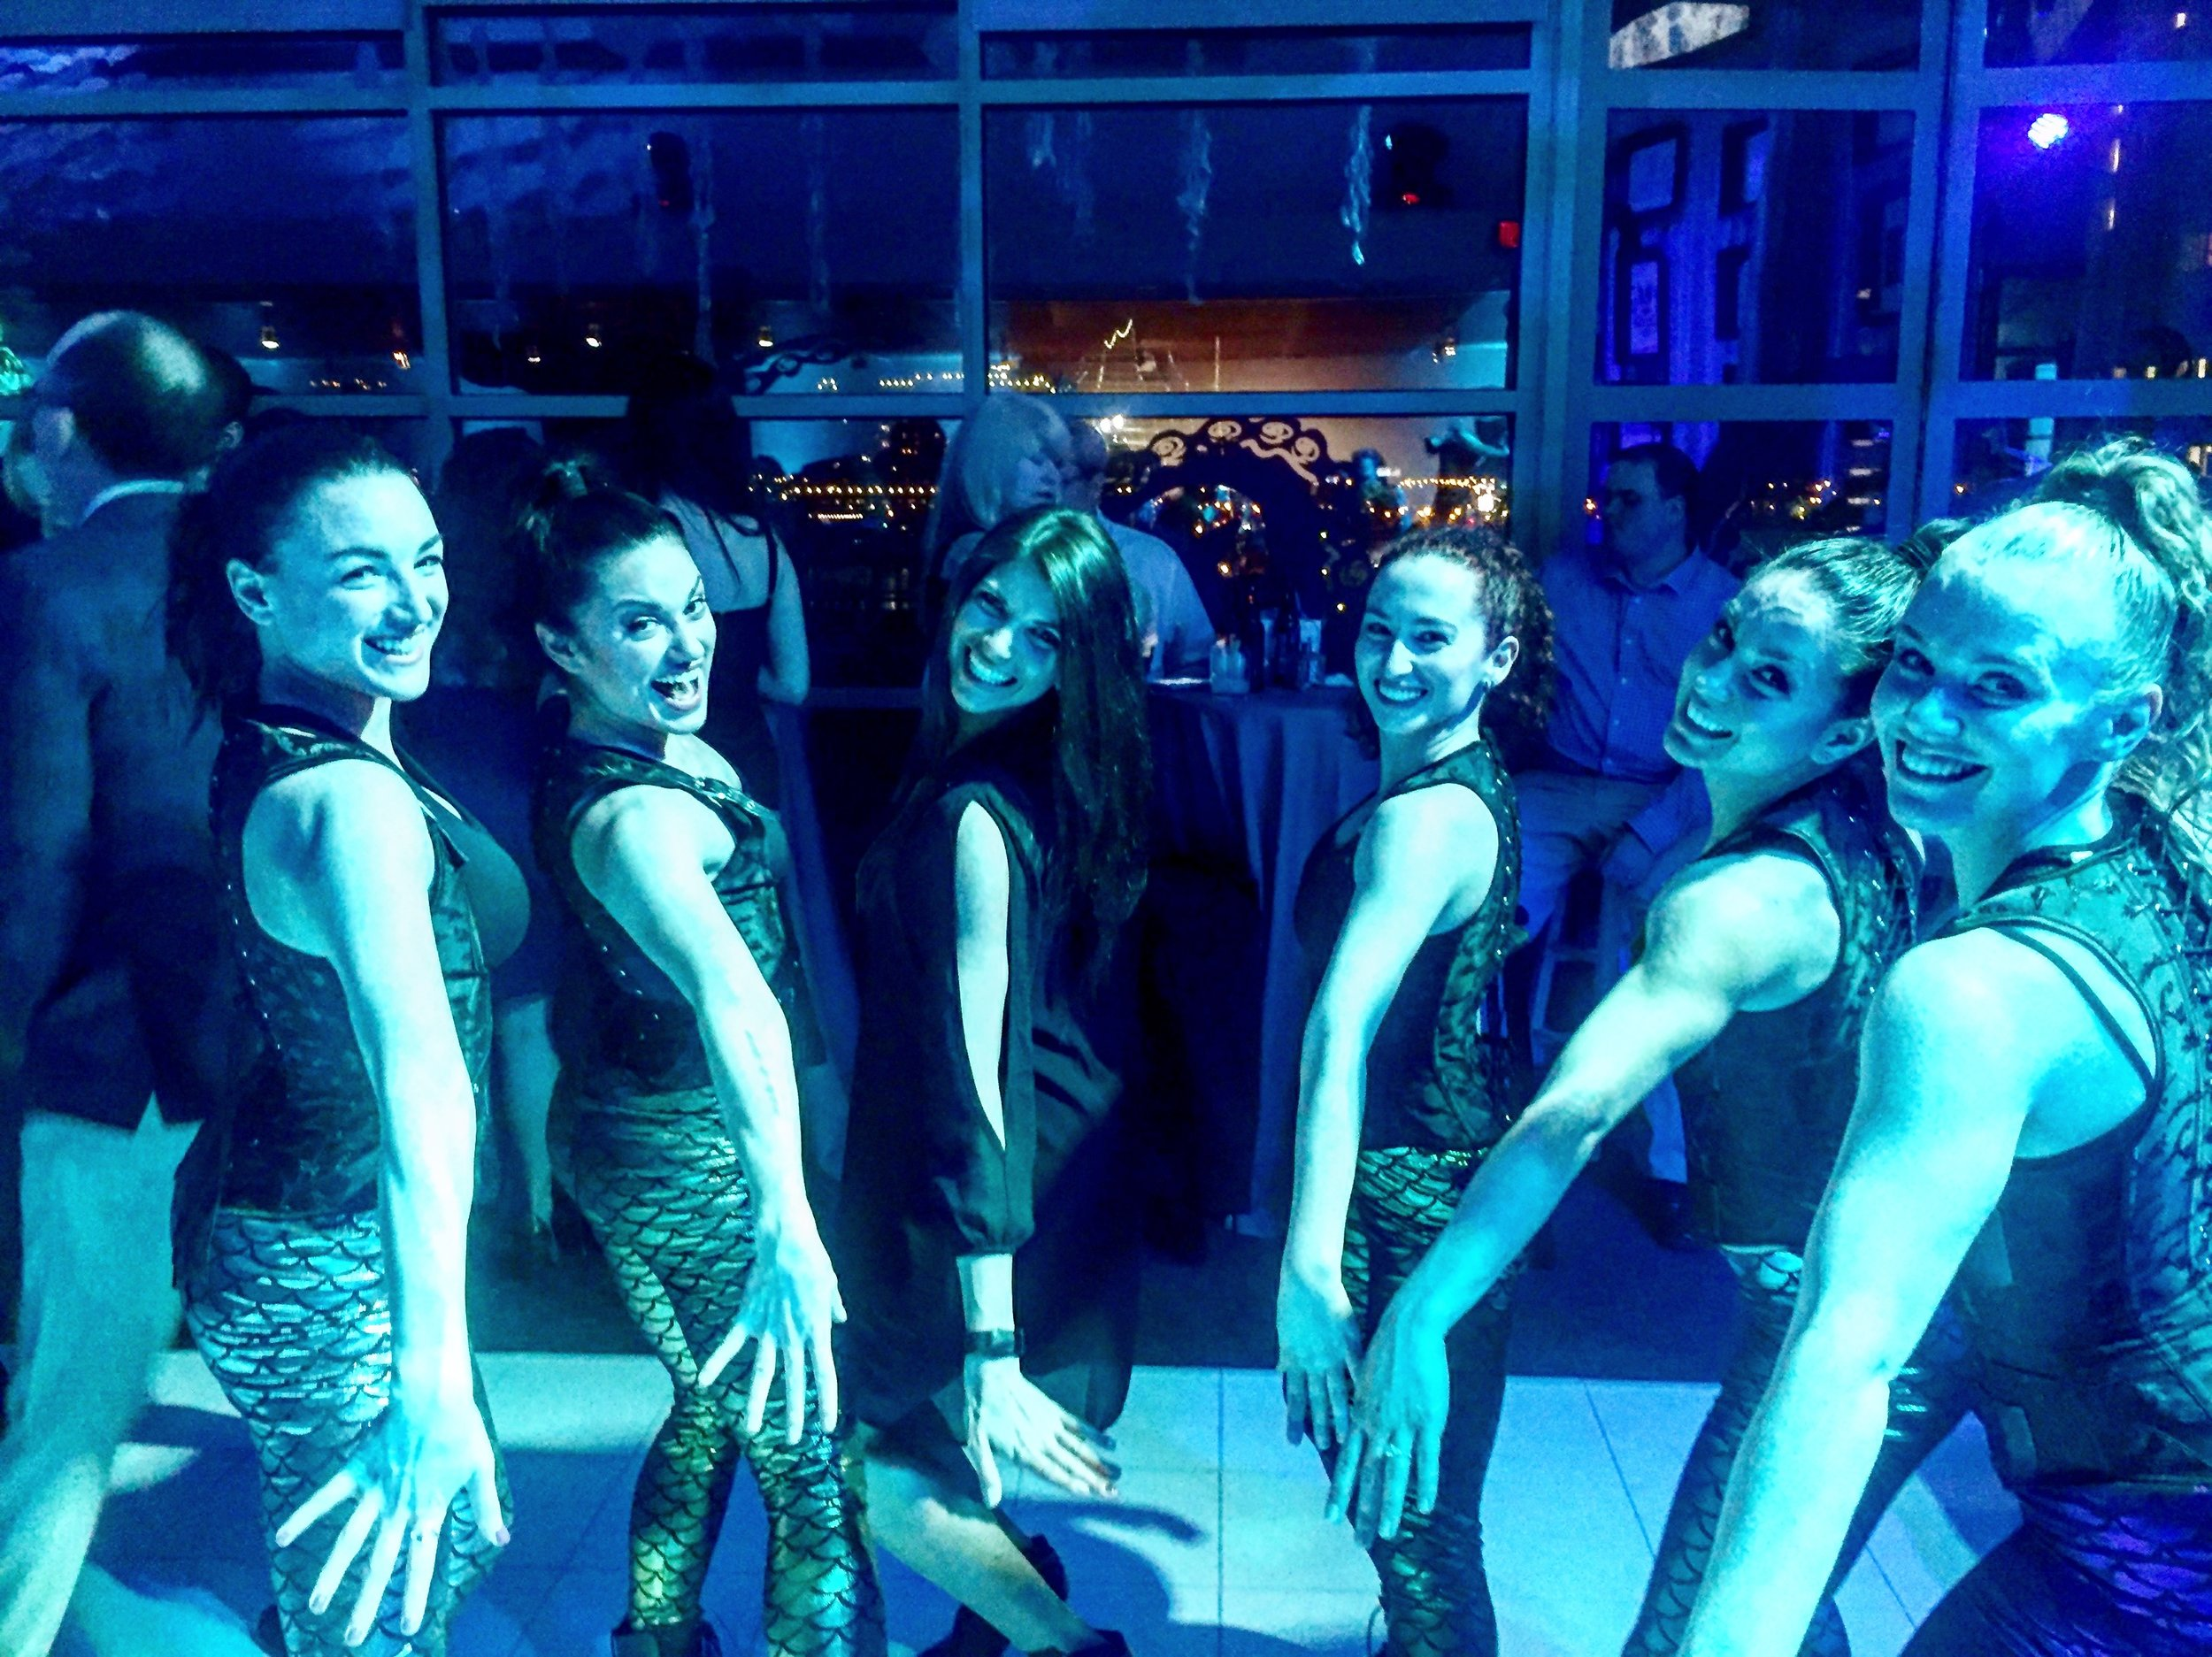 Dancers (Left to Right): Alex Monte Carlo, Alexa Chambers, Kelli Moshen( Director), Sarah McWilliams, Katie Book, Colleen Dougherty.